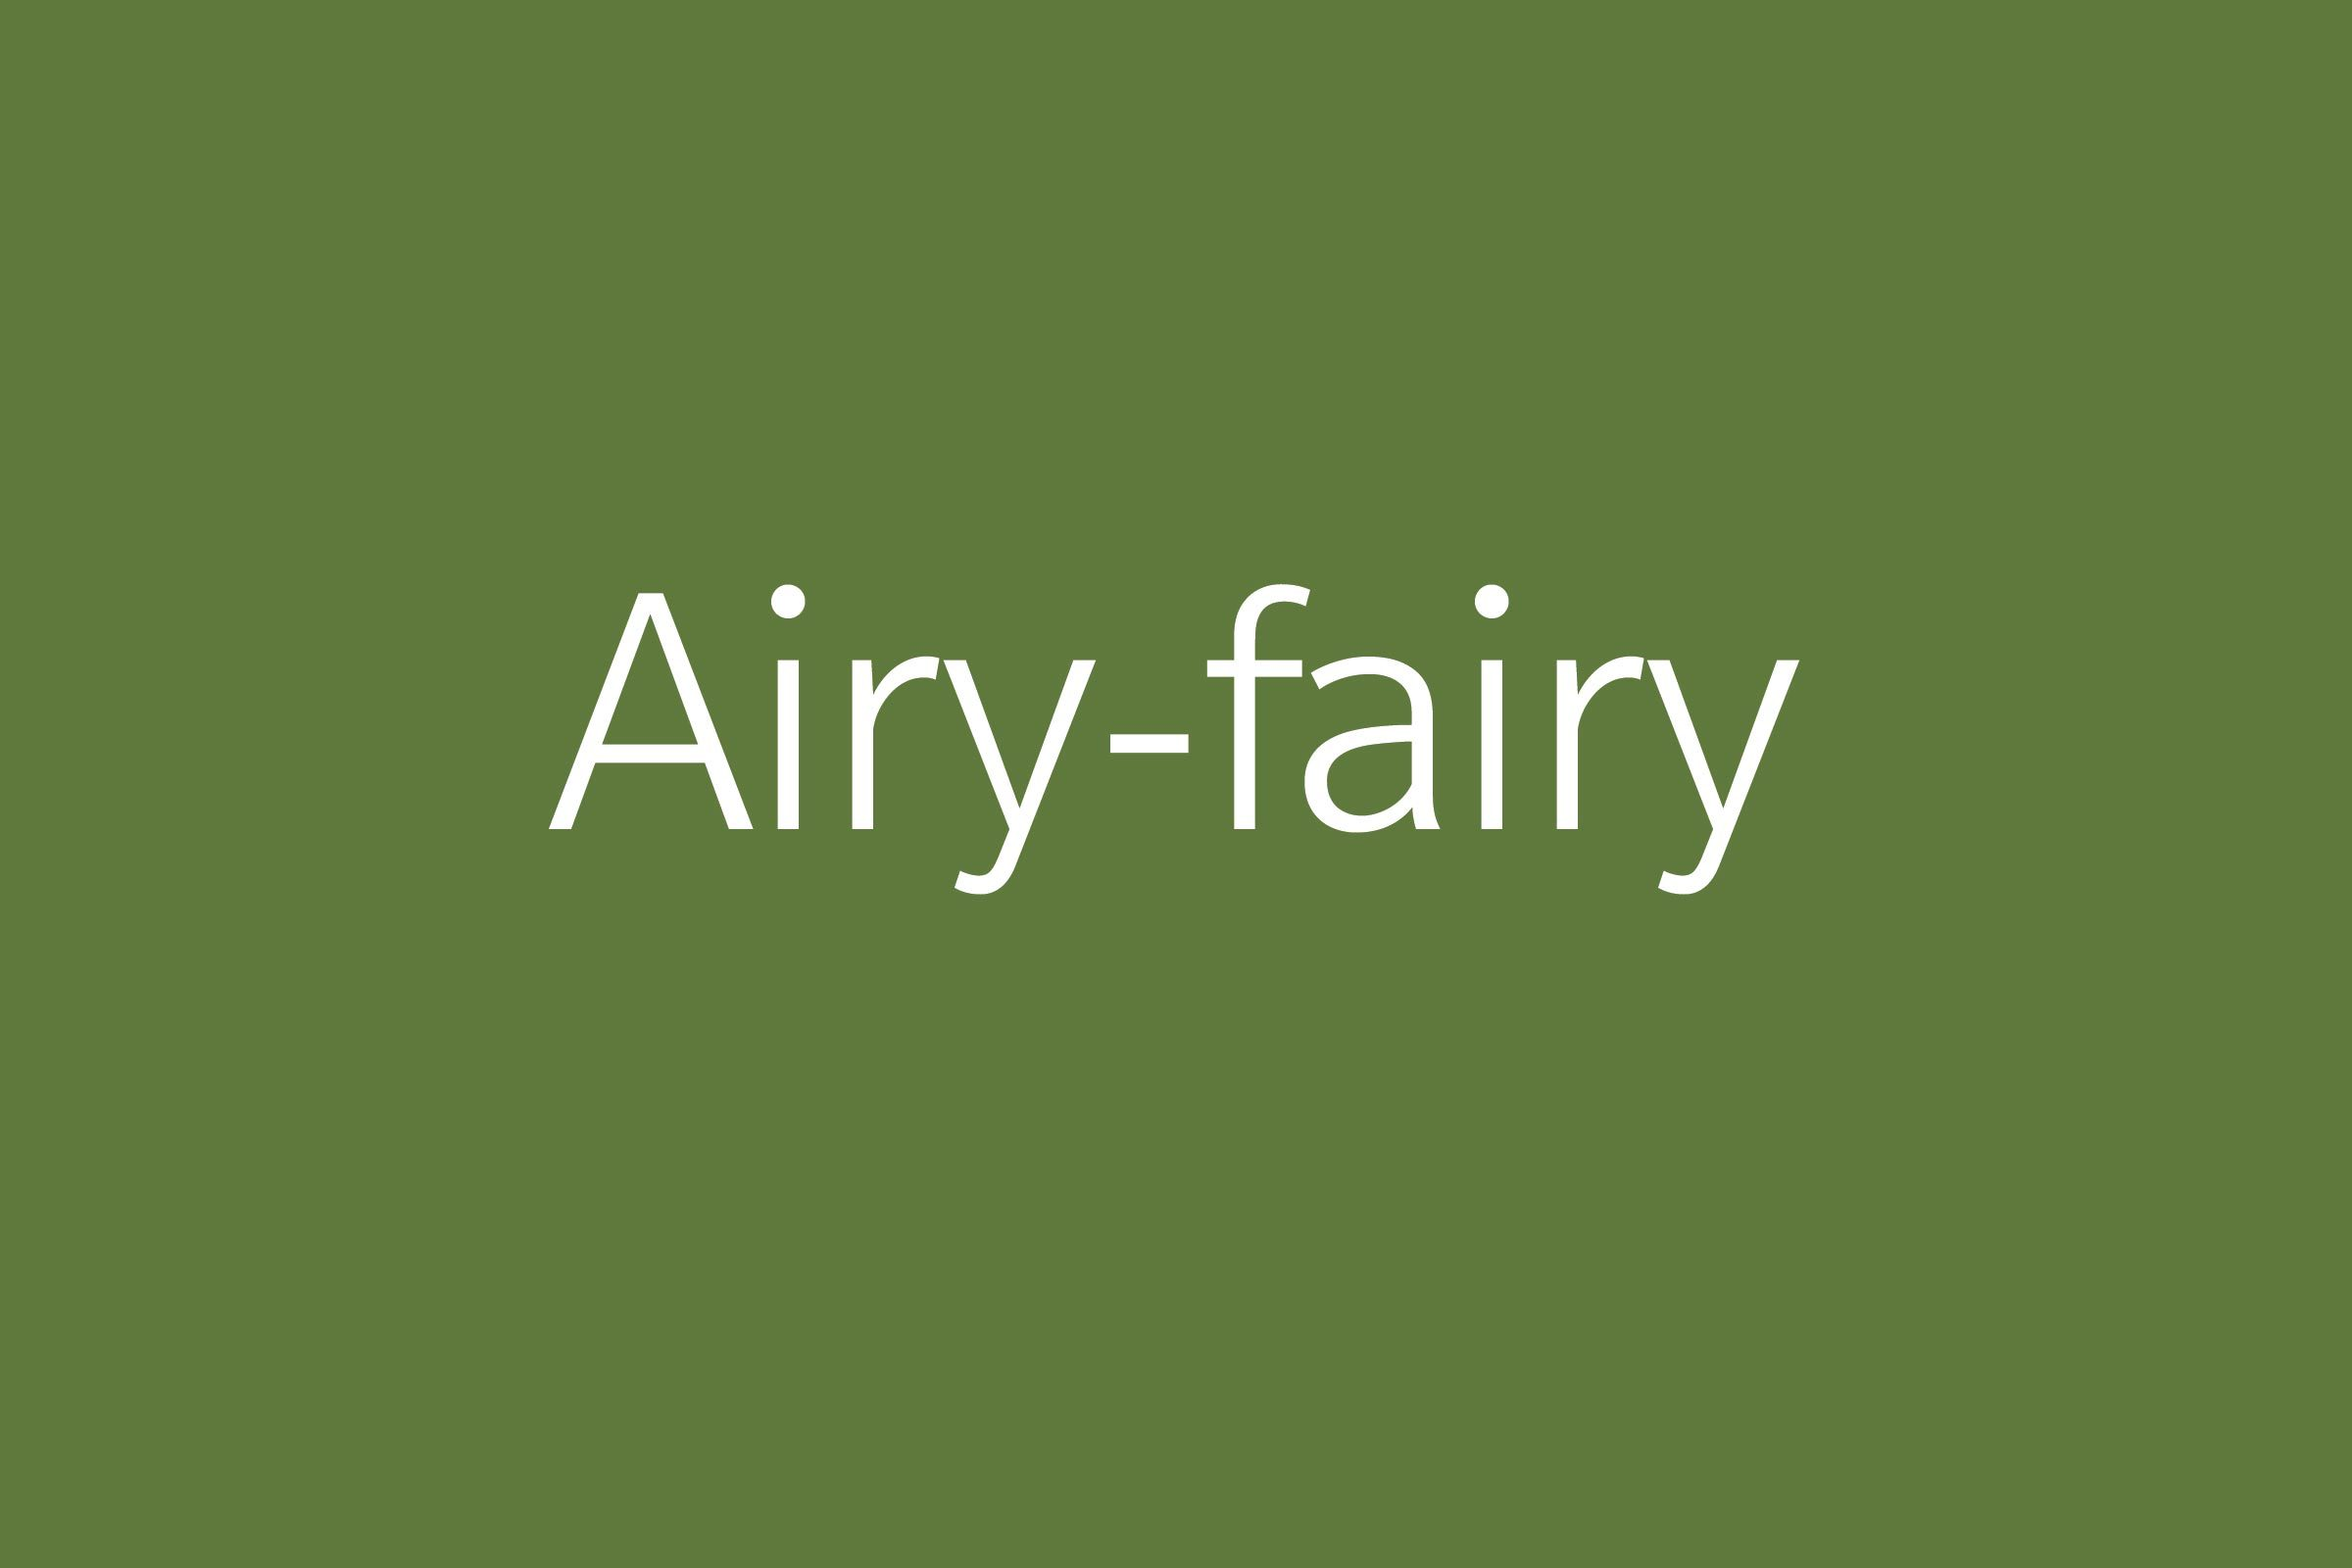 airy-fairy funny word funny words to say